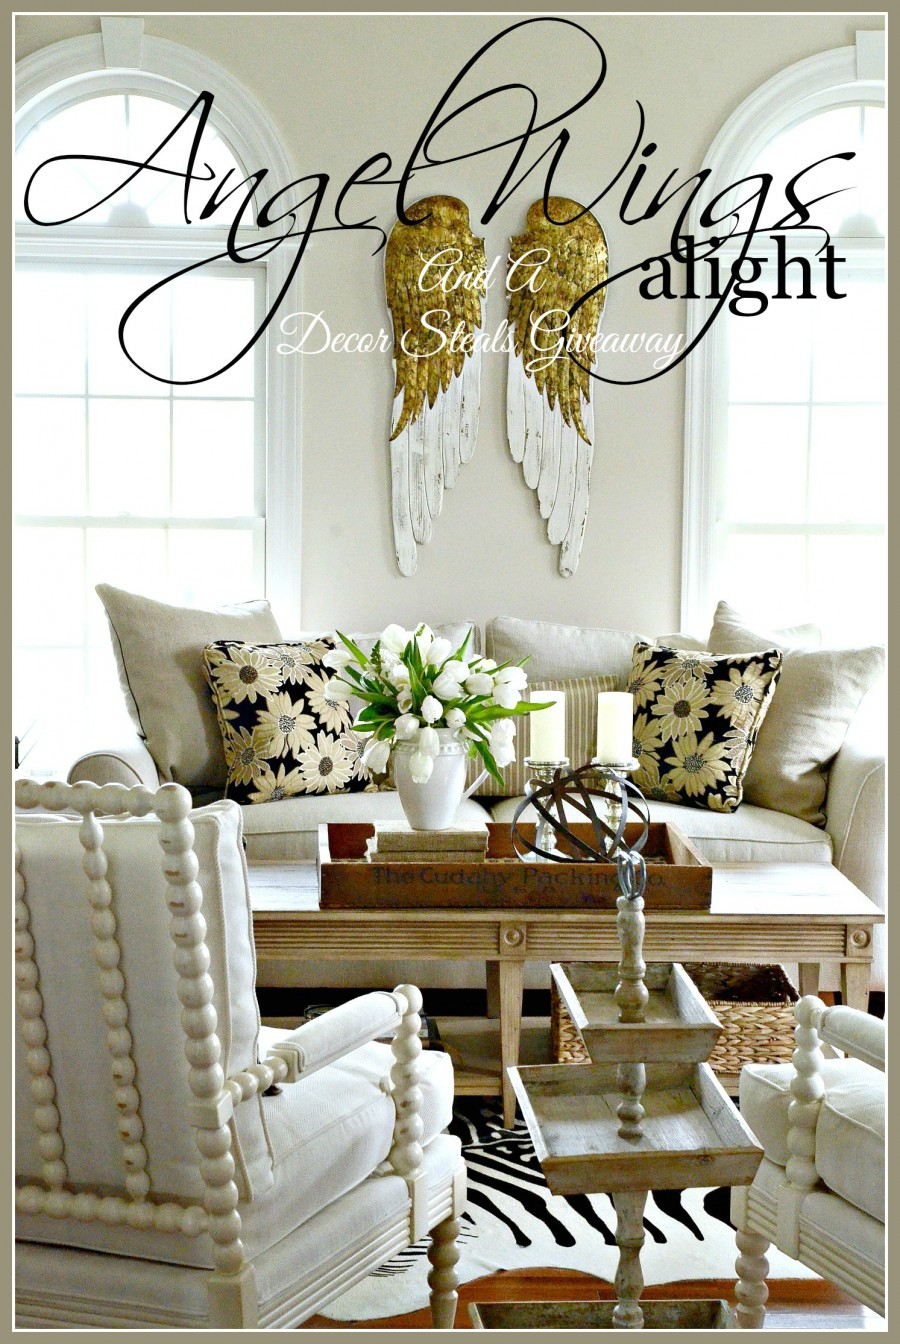 ANGEL WINGS ALIGHT AND A GIVEAWAY